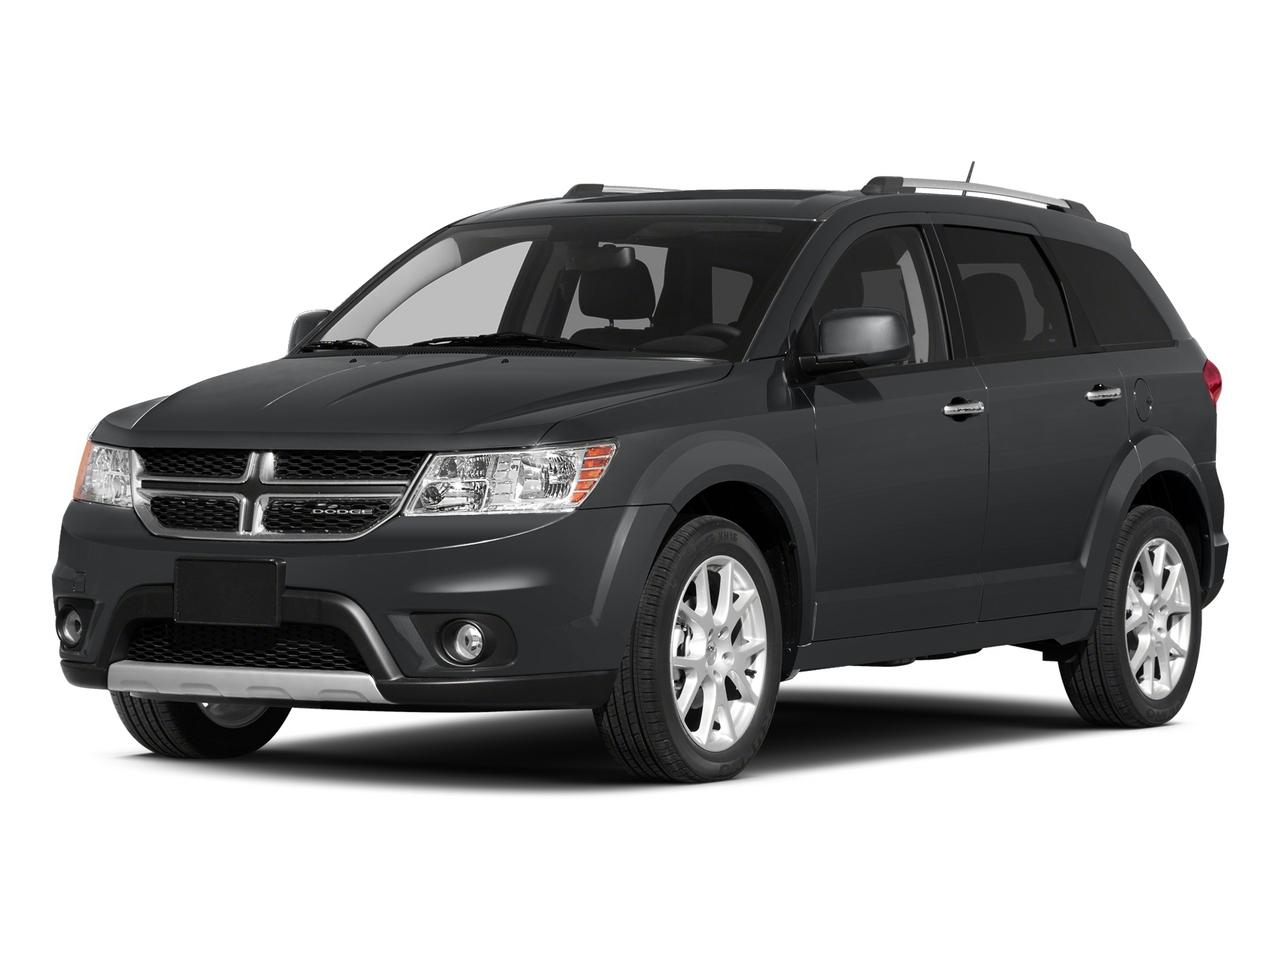 2015 Dodge Journey Vehicle Photo in Colorado Springs, CO 80905